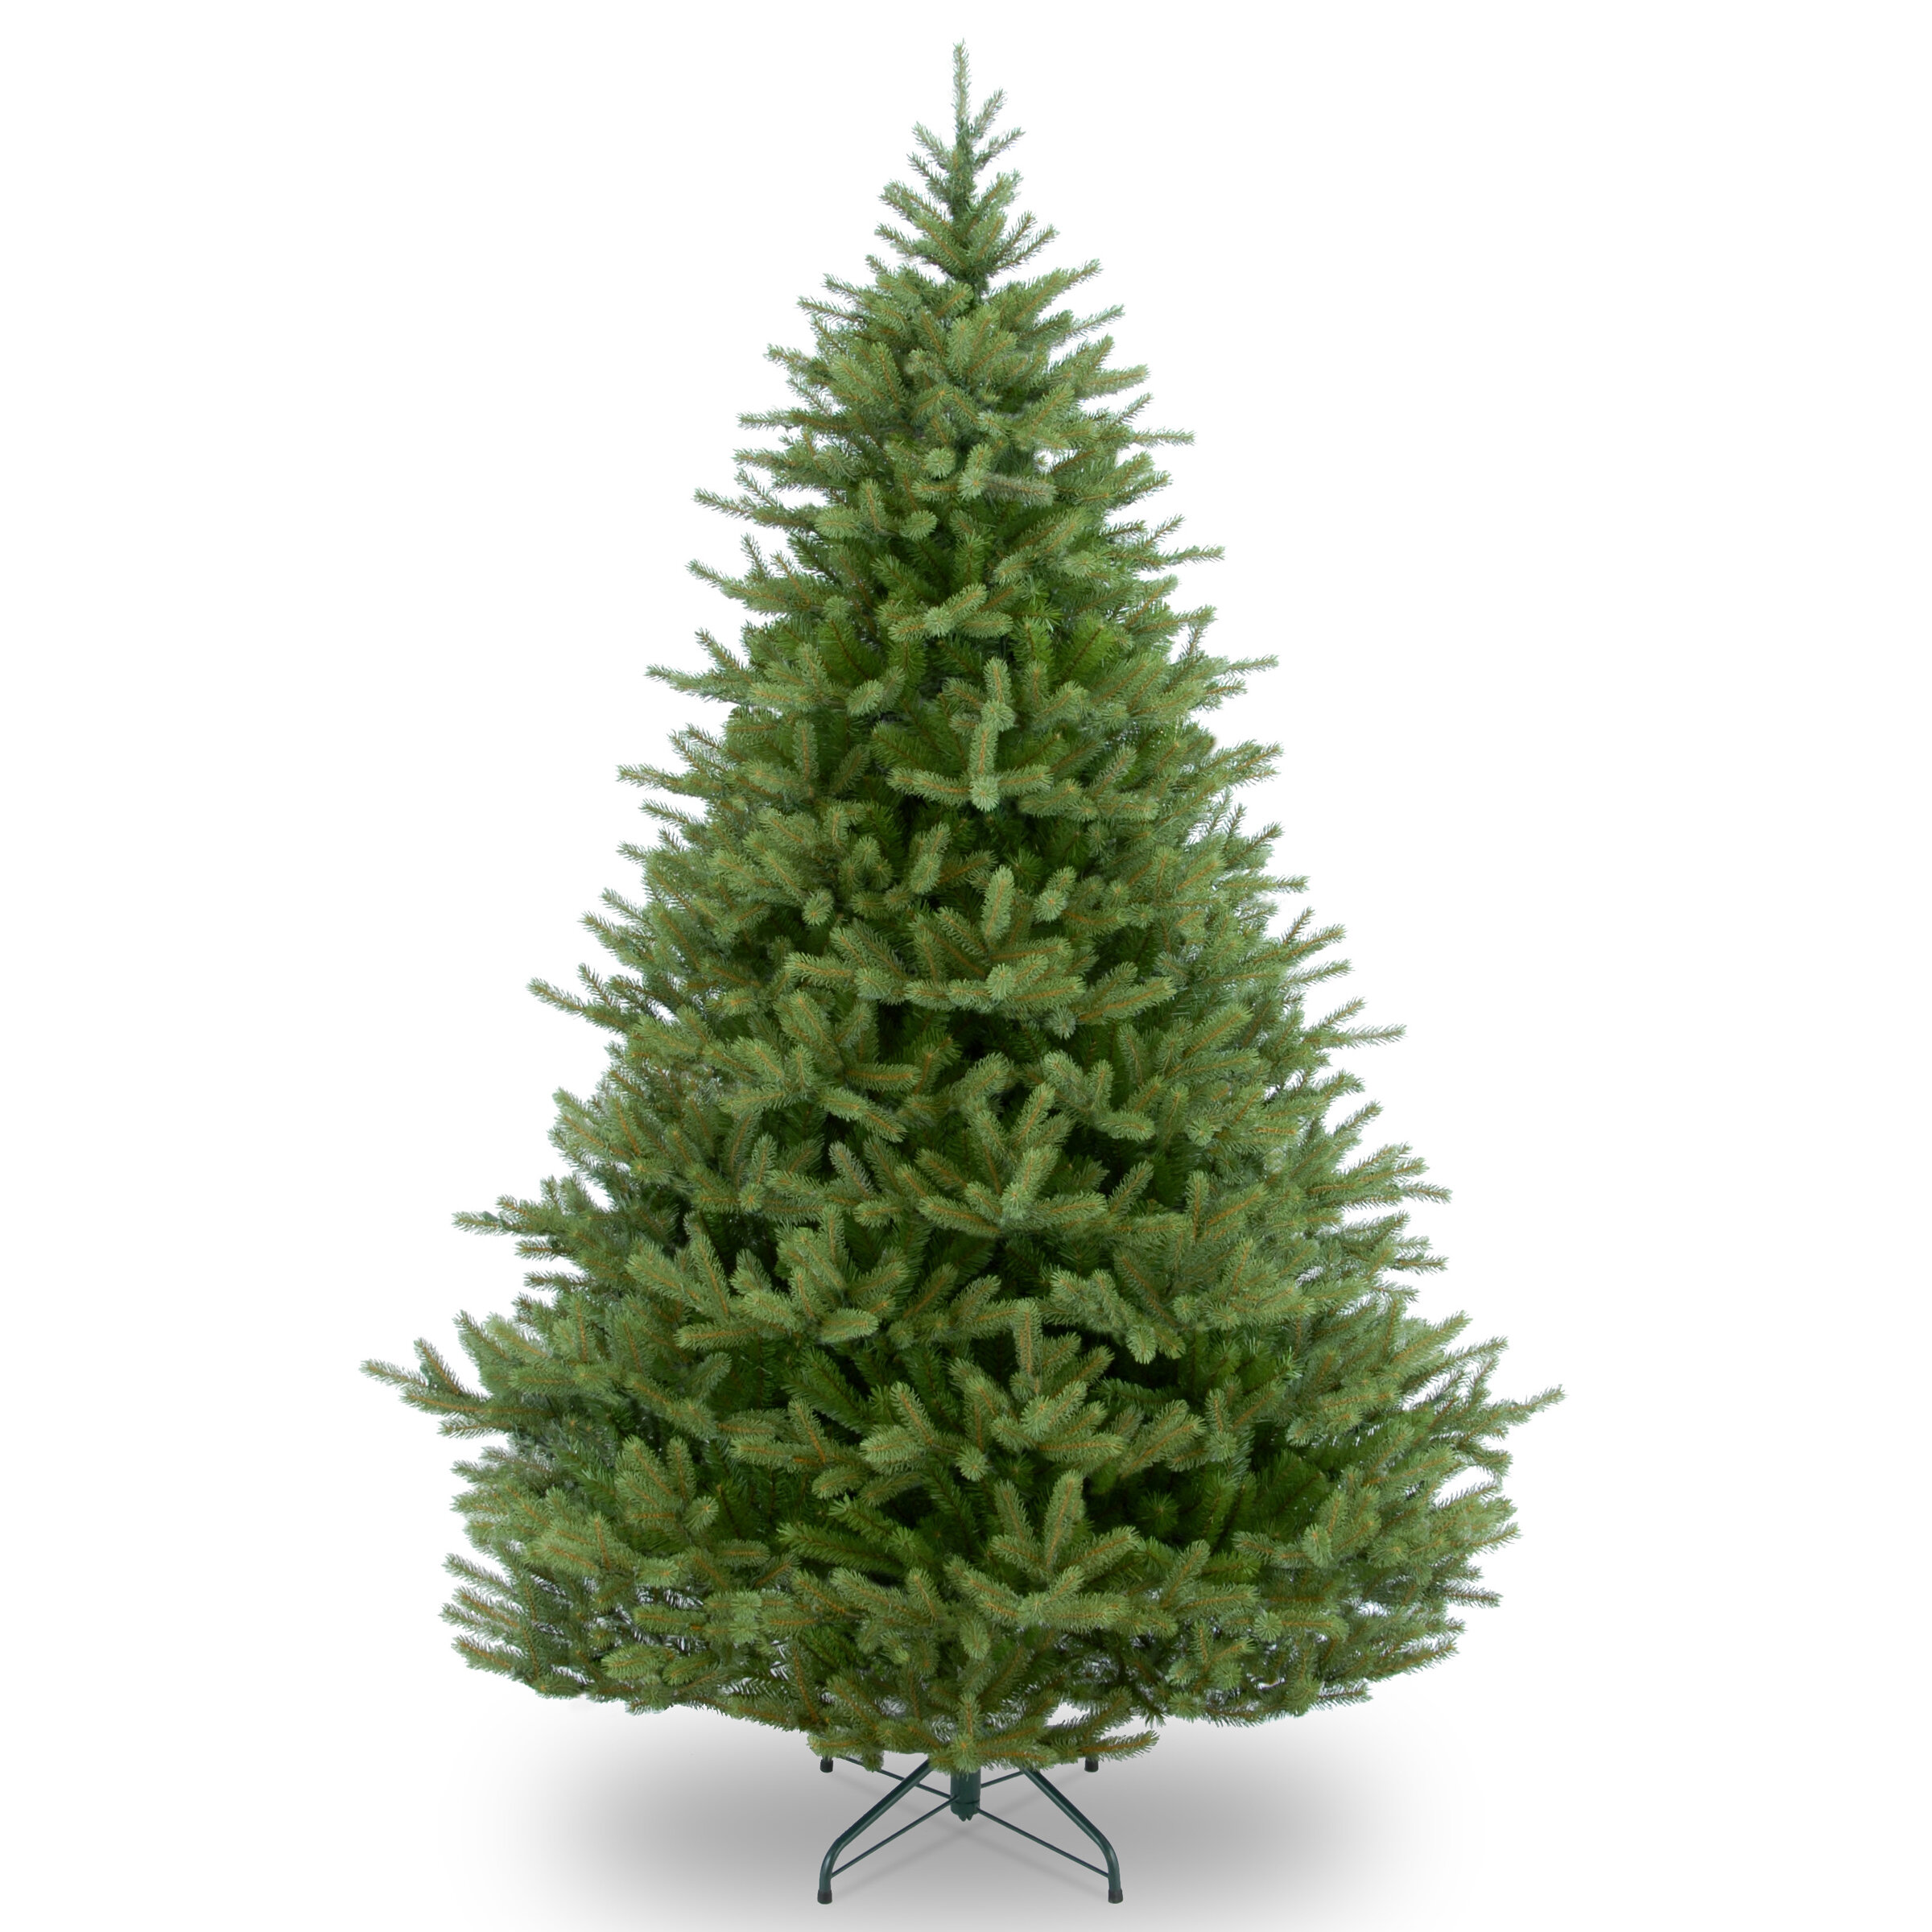 National Tree Co. Norway Green Spruce Artificial Christmas Tree & Reviews |  Wayfair